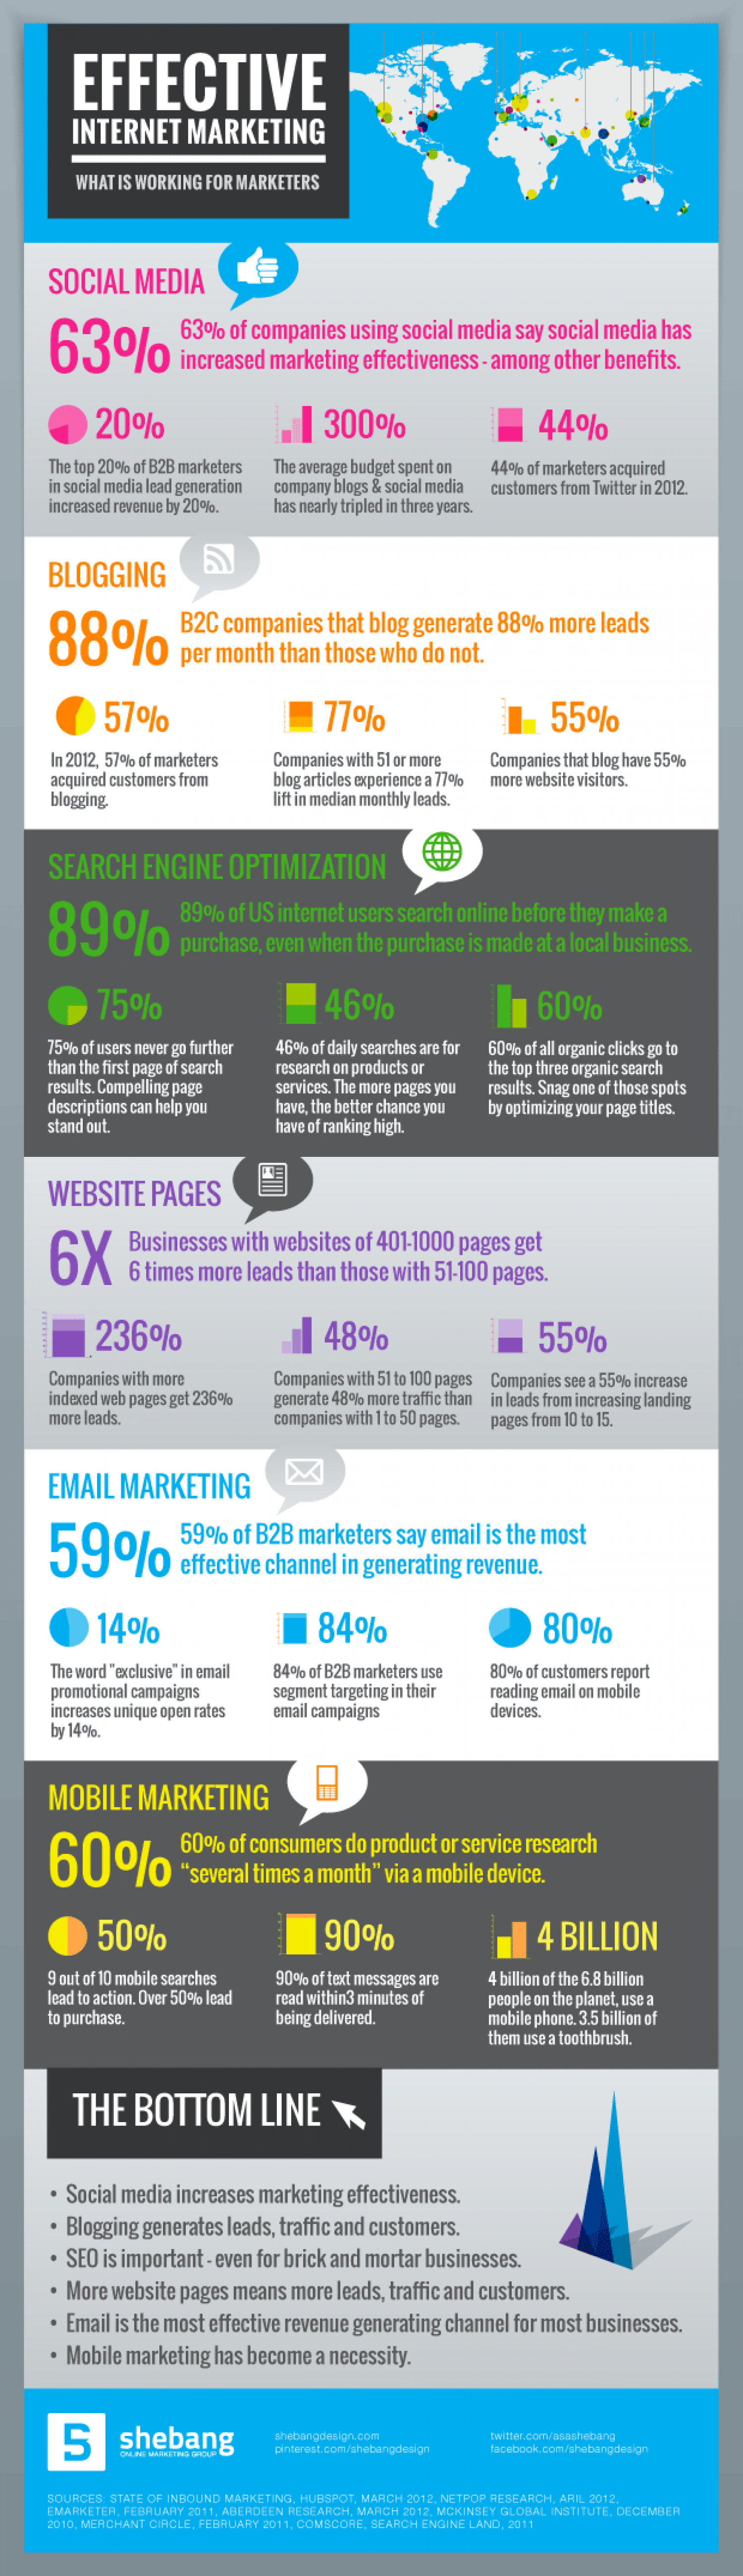 Effective Internet Marketing Infographic